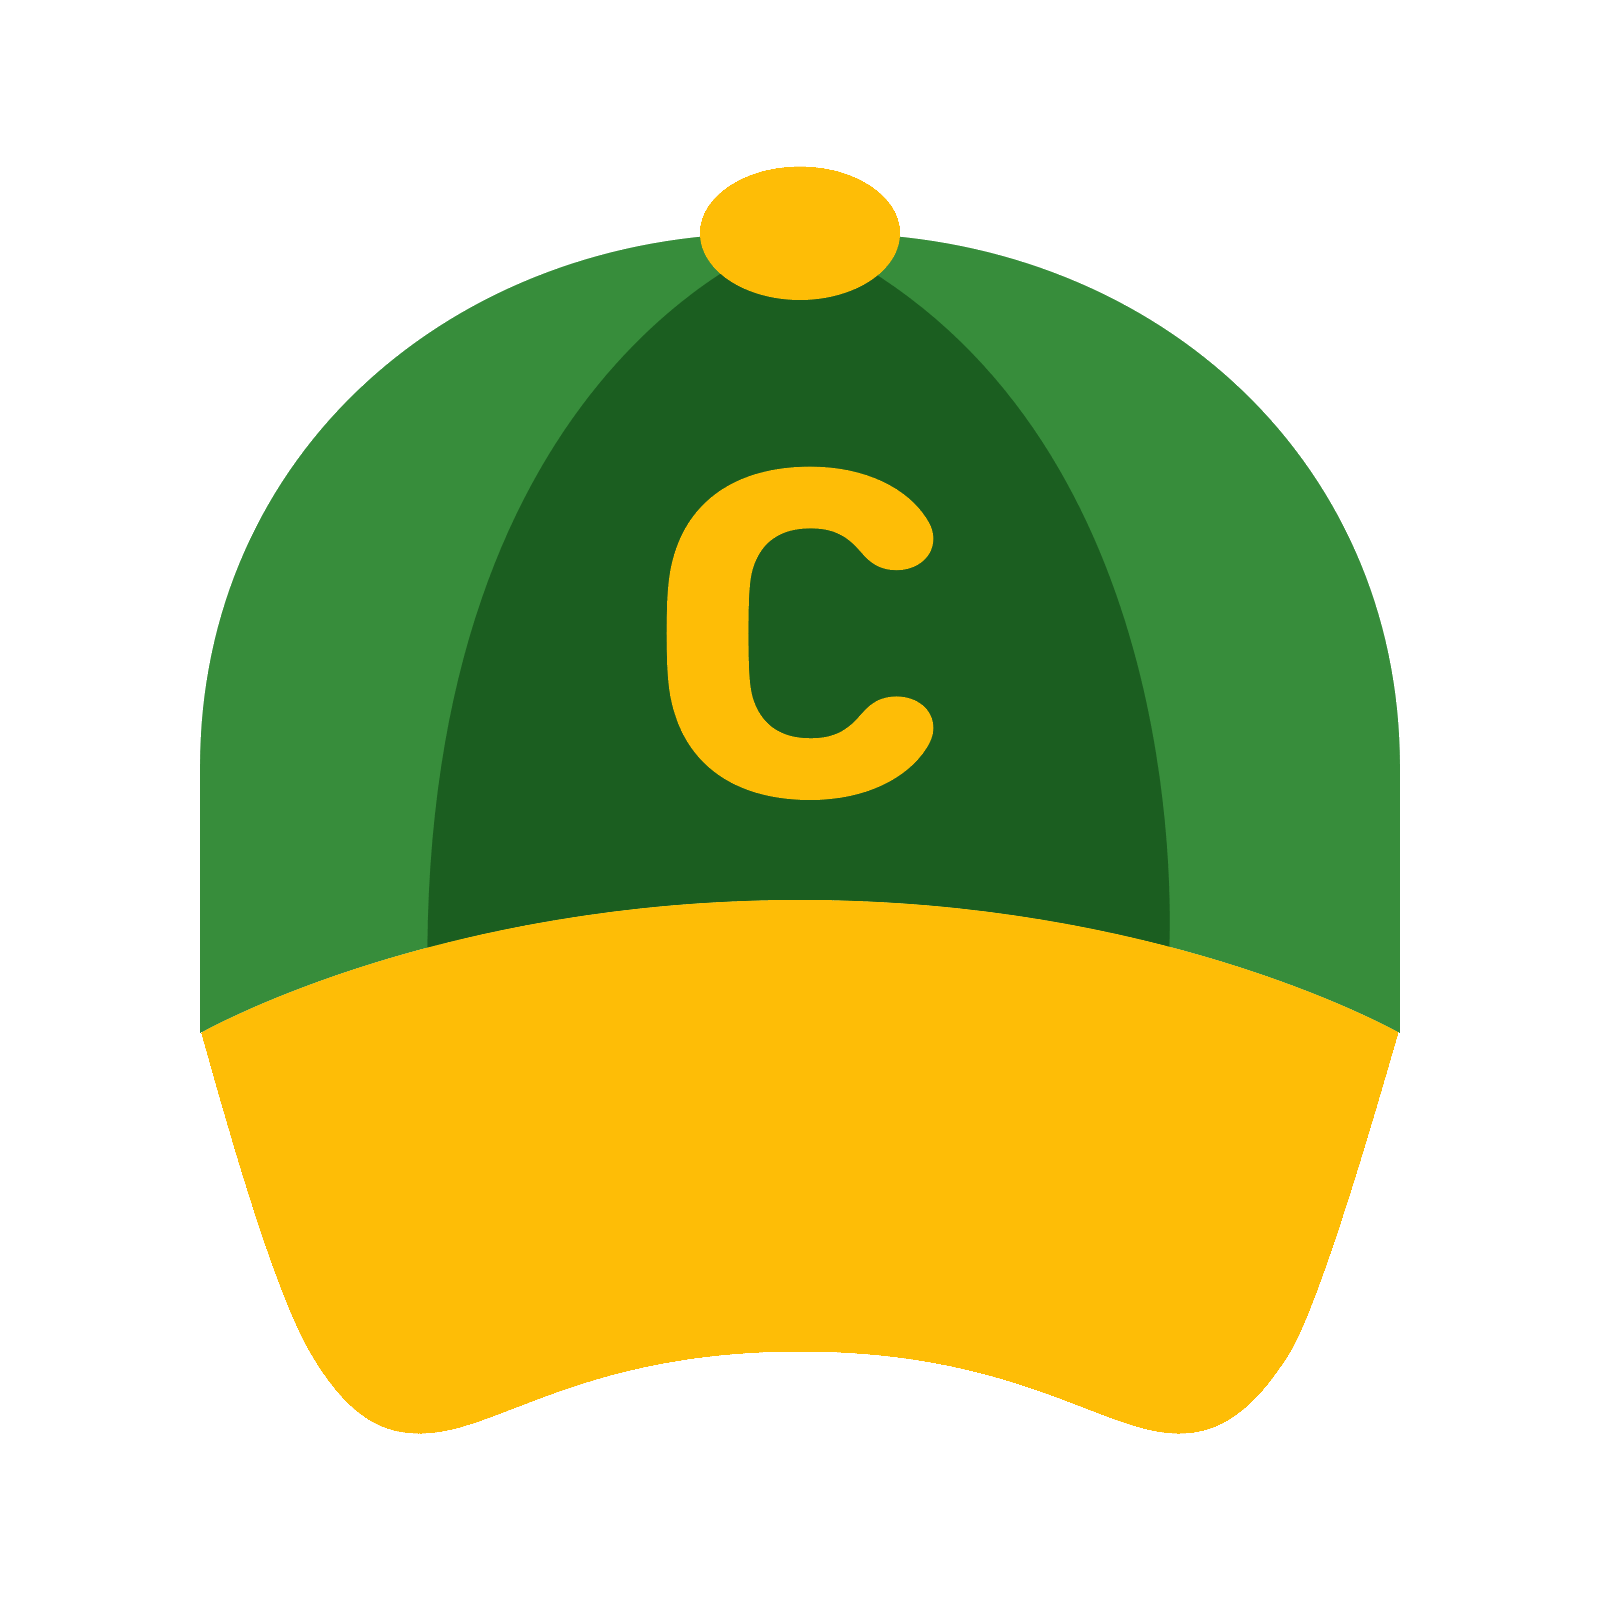 Baseball clipart vector free download svg free Baseball Cap Icon - free download, PNG and vector svg free